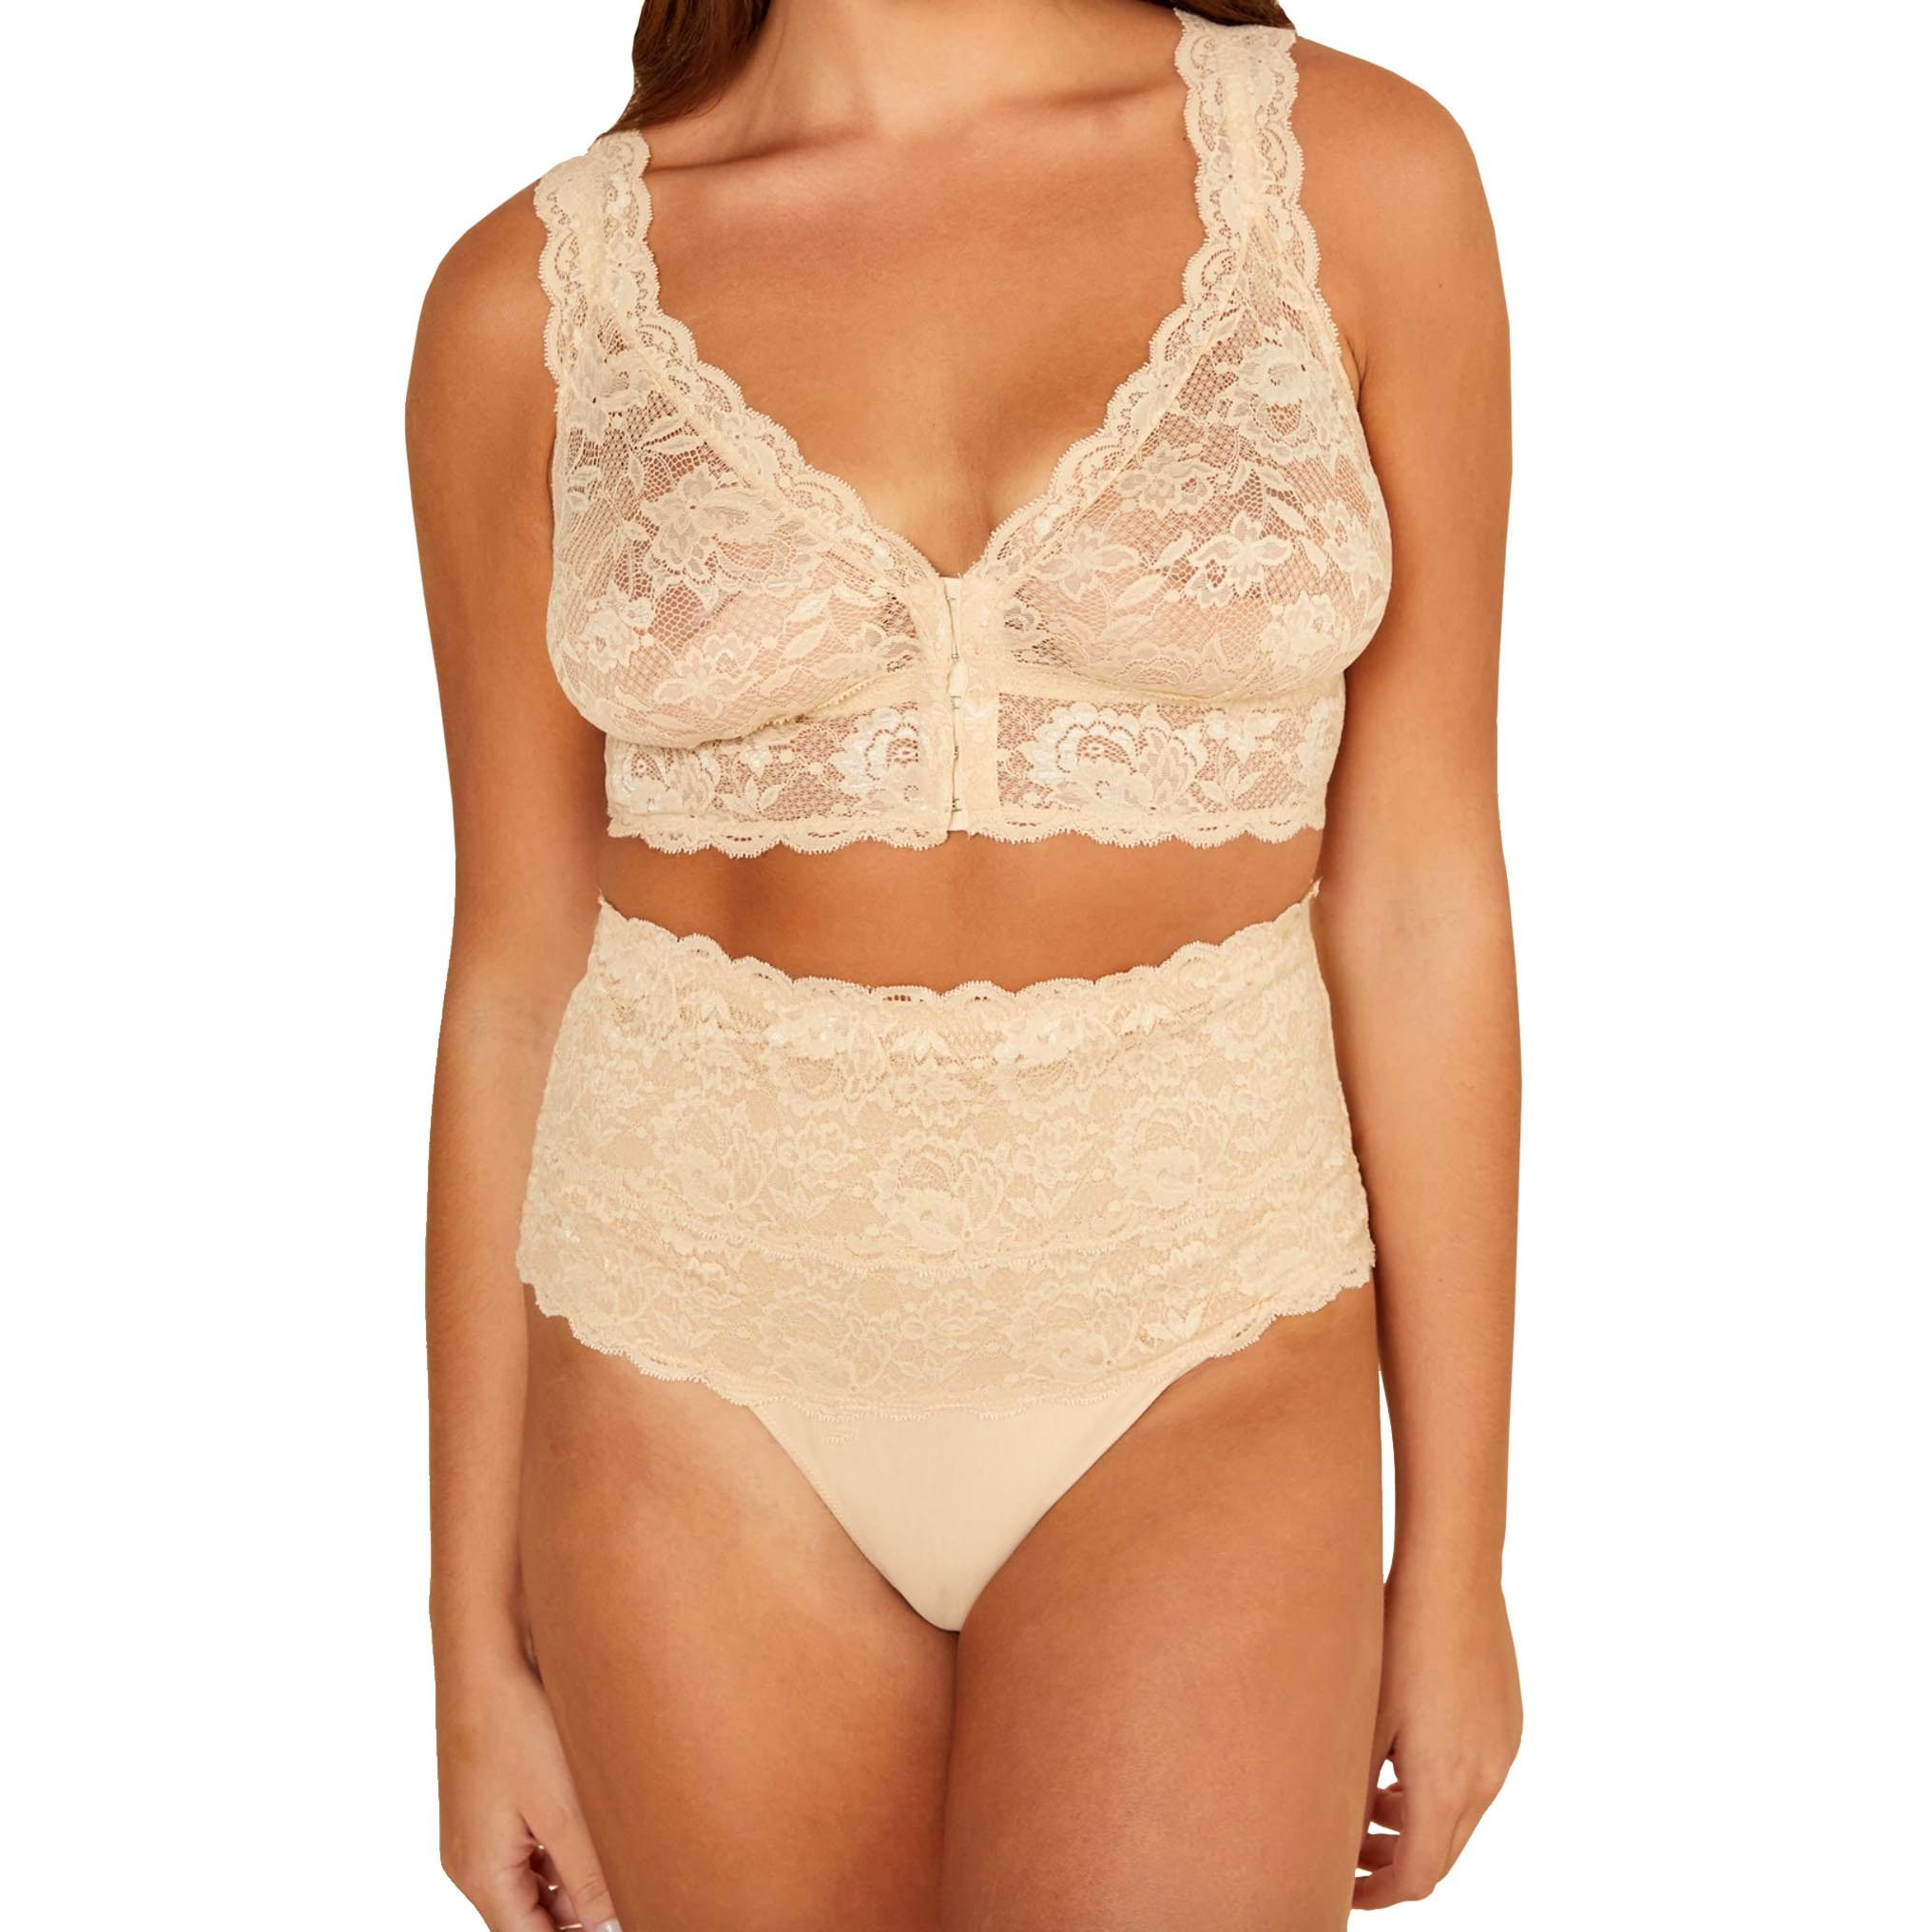 Never Say Never Sexy High Waist Thong Shapewear